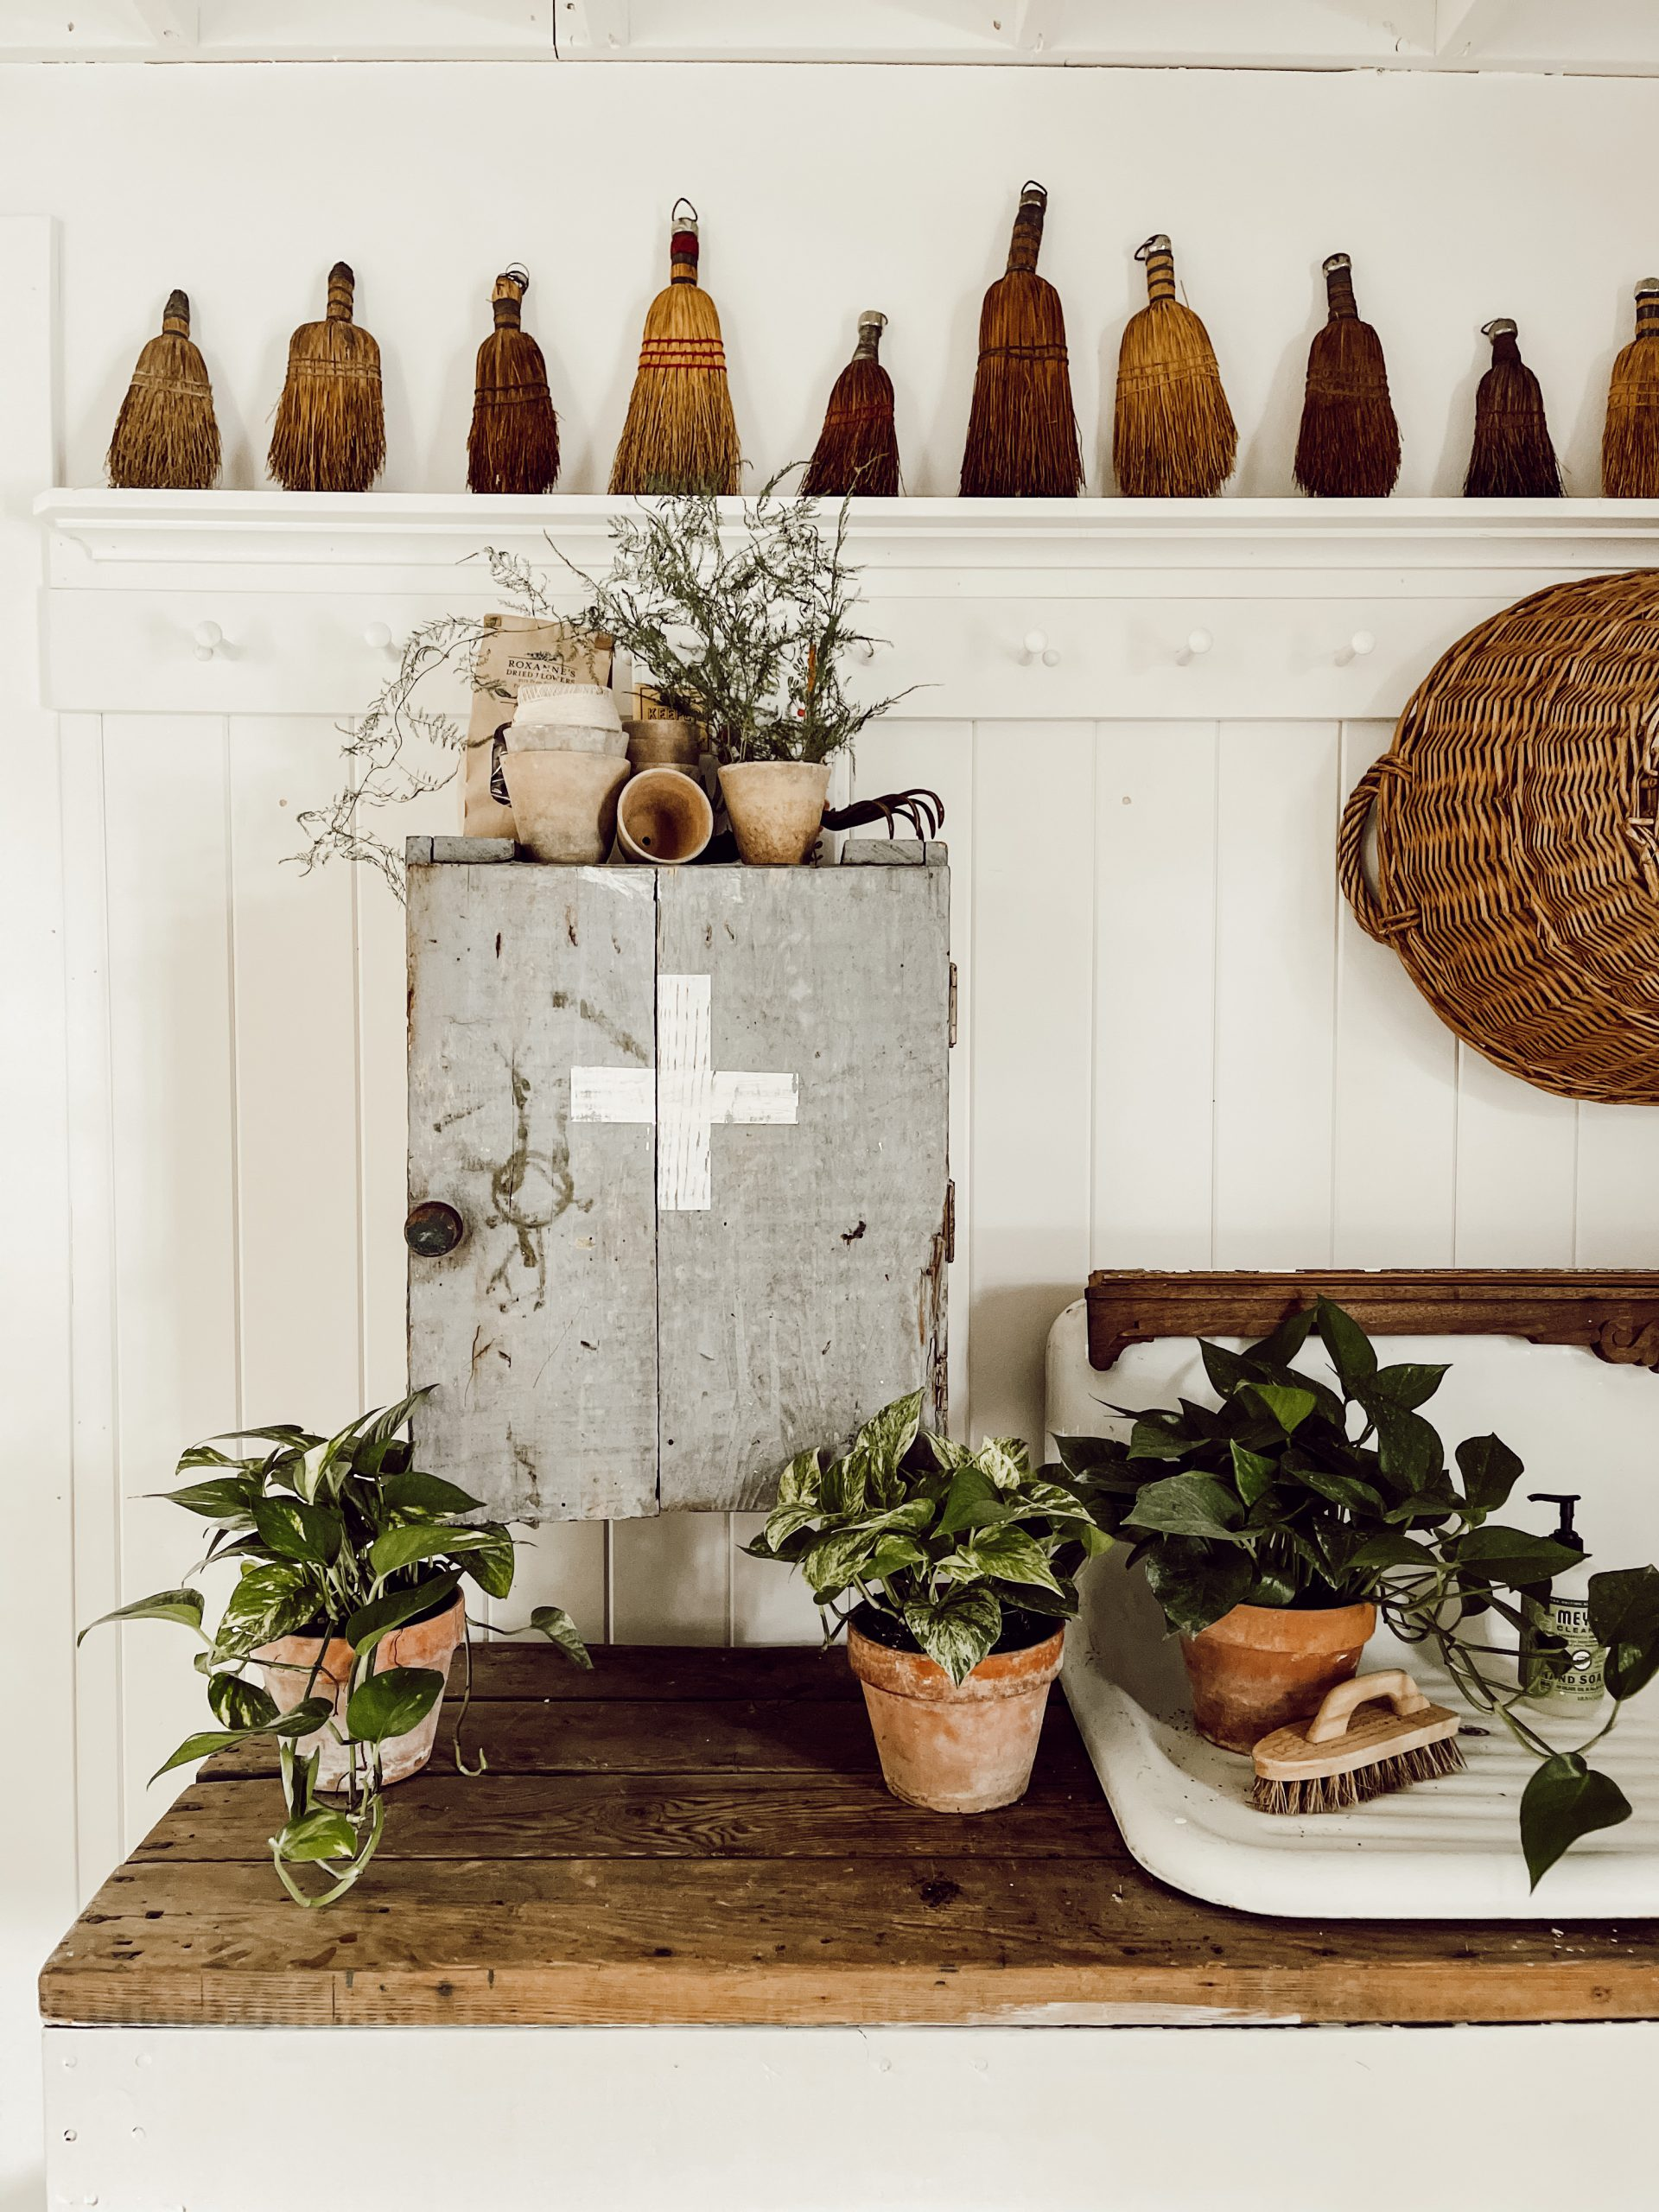 The Best Vases and Planters